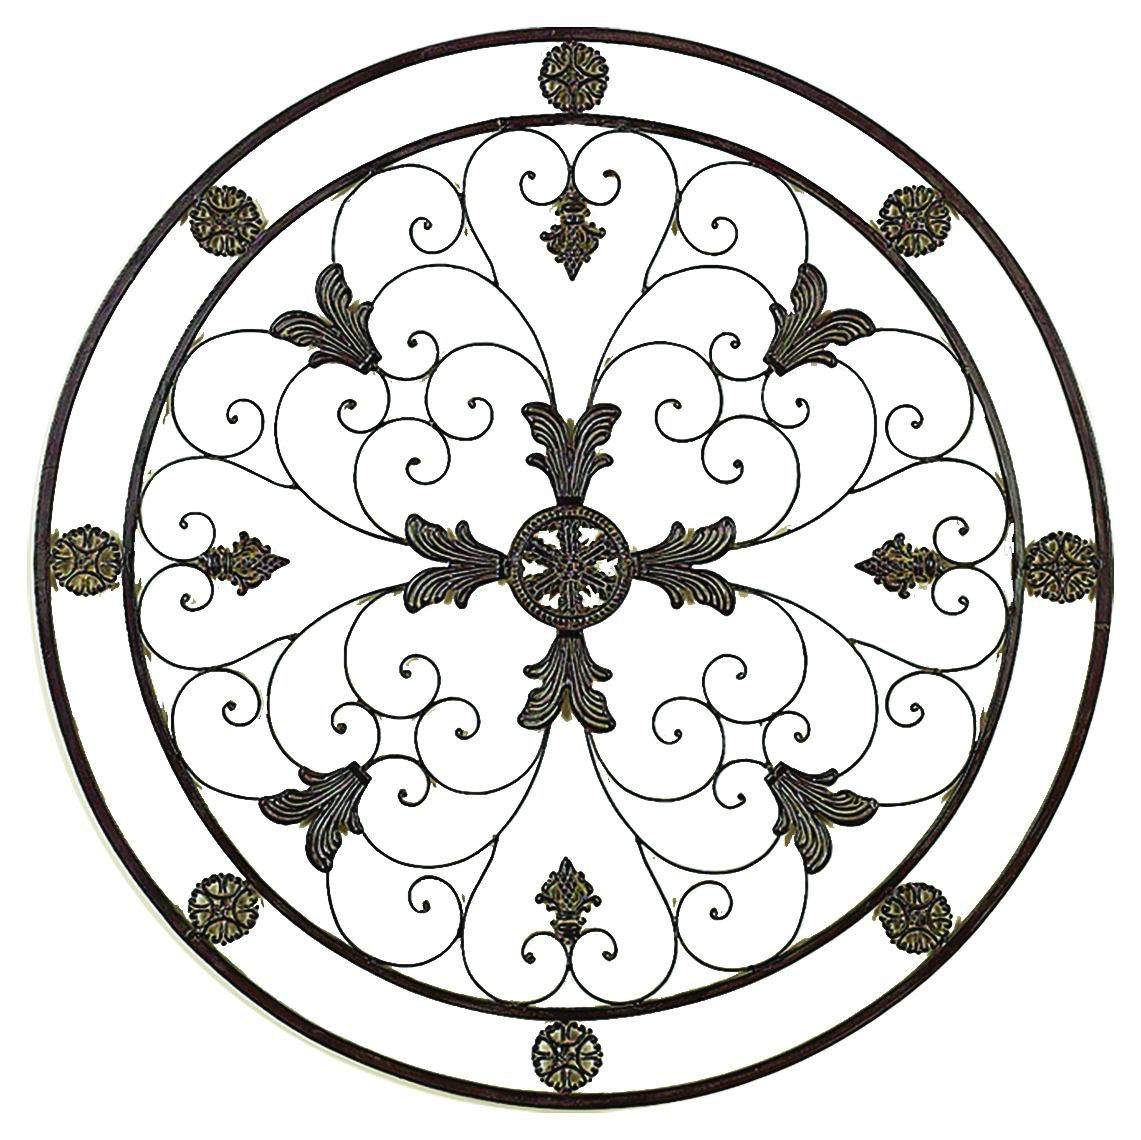 Energy Circle Metal Wall Art Decor Sculpture 36